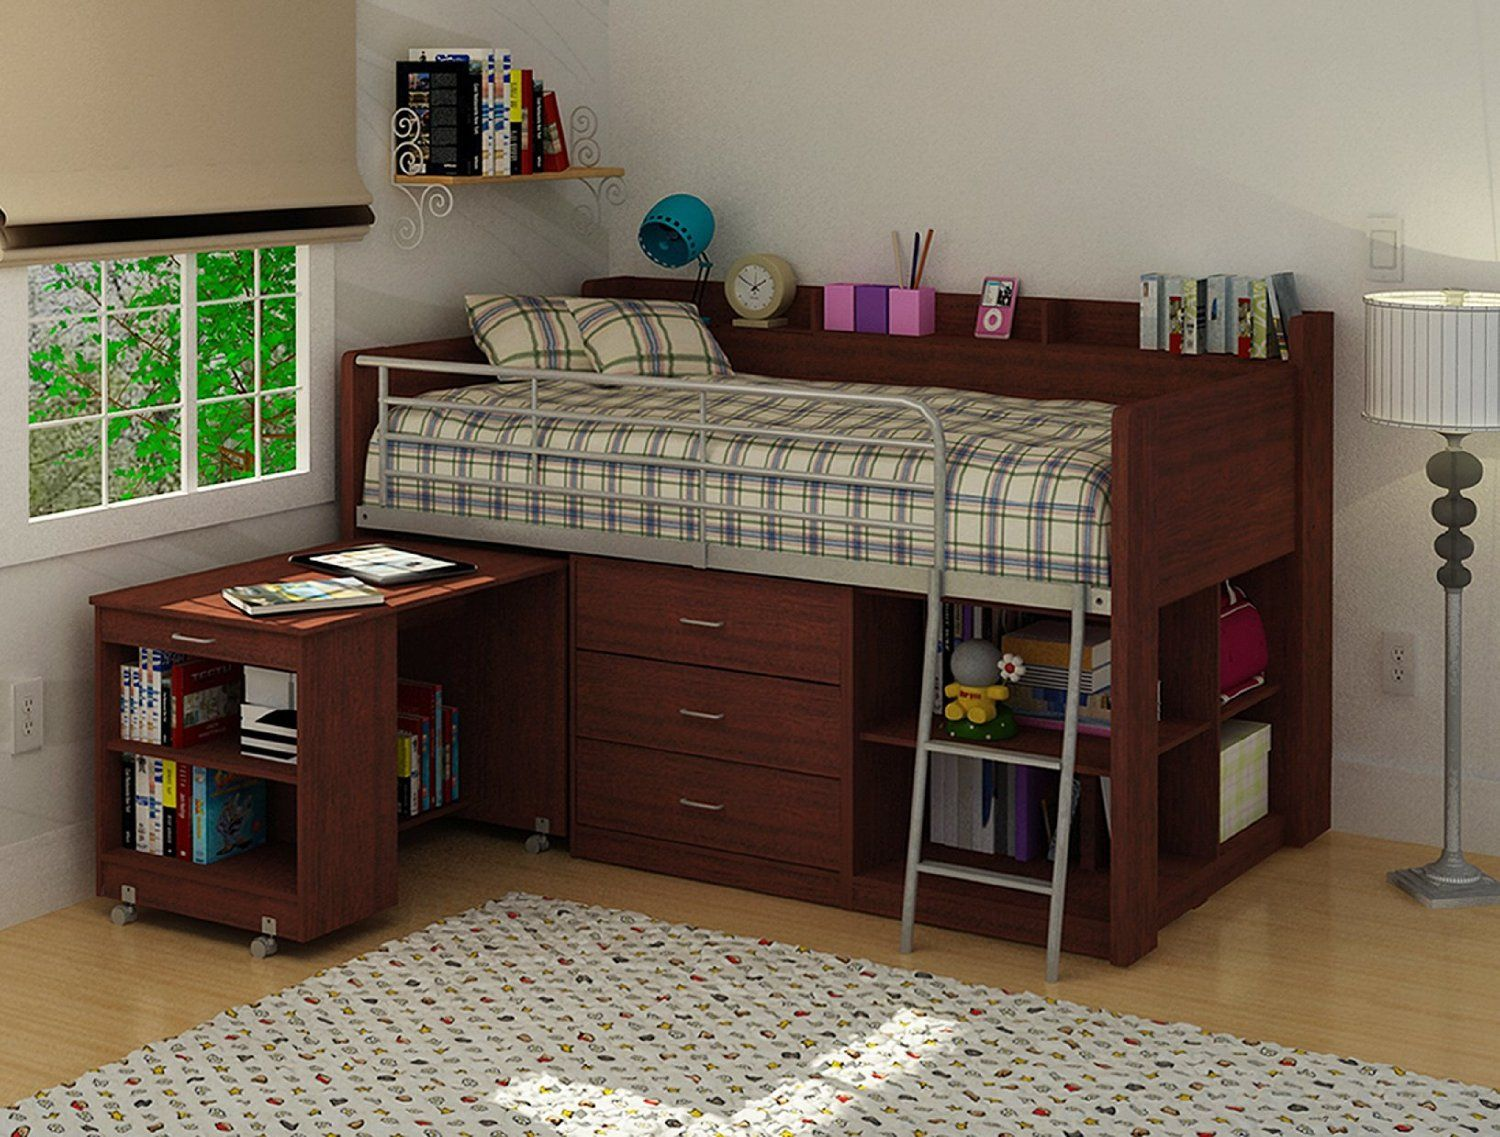 Pin By Annora On Home Interior In 2018 Bunk Bed With Desk Bedroom